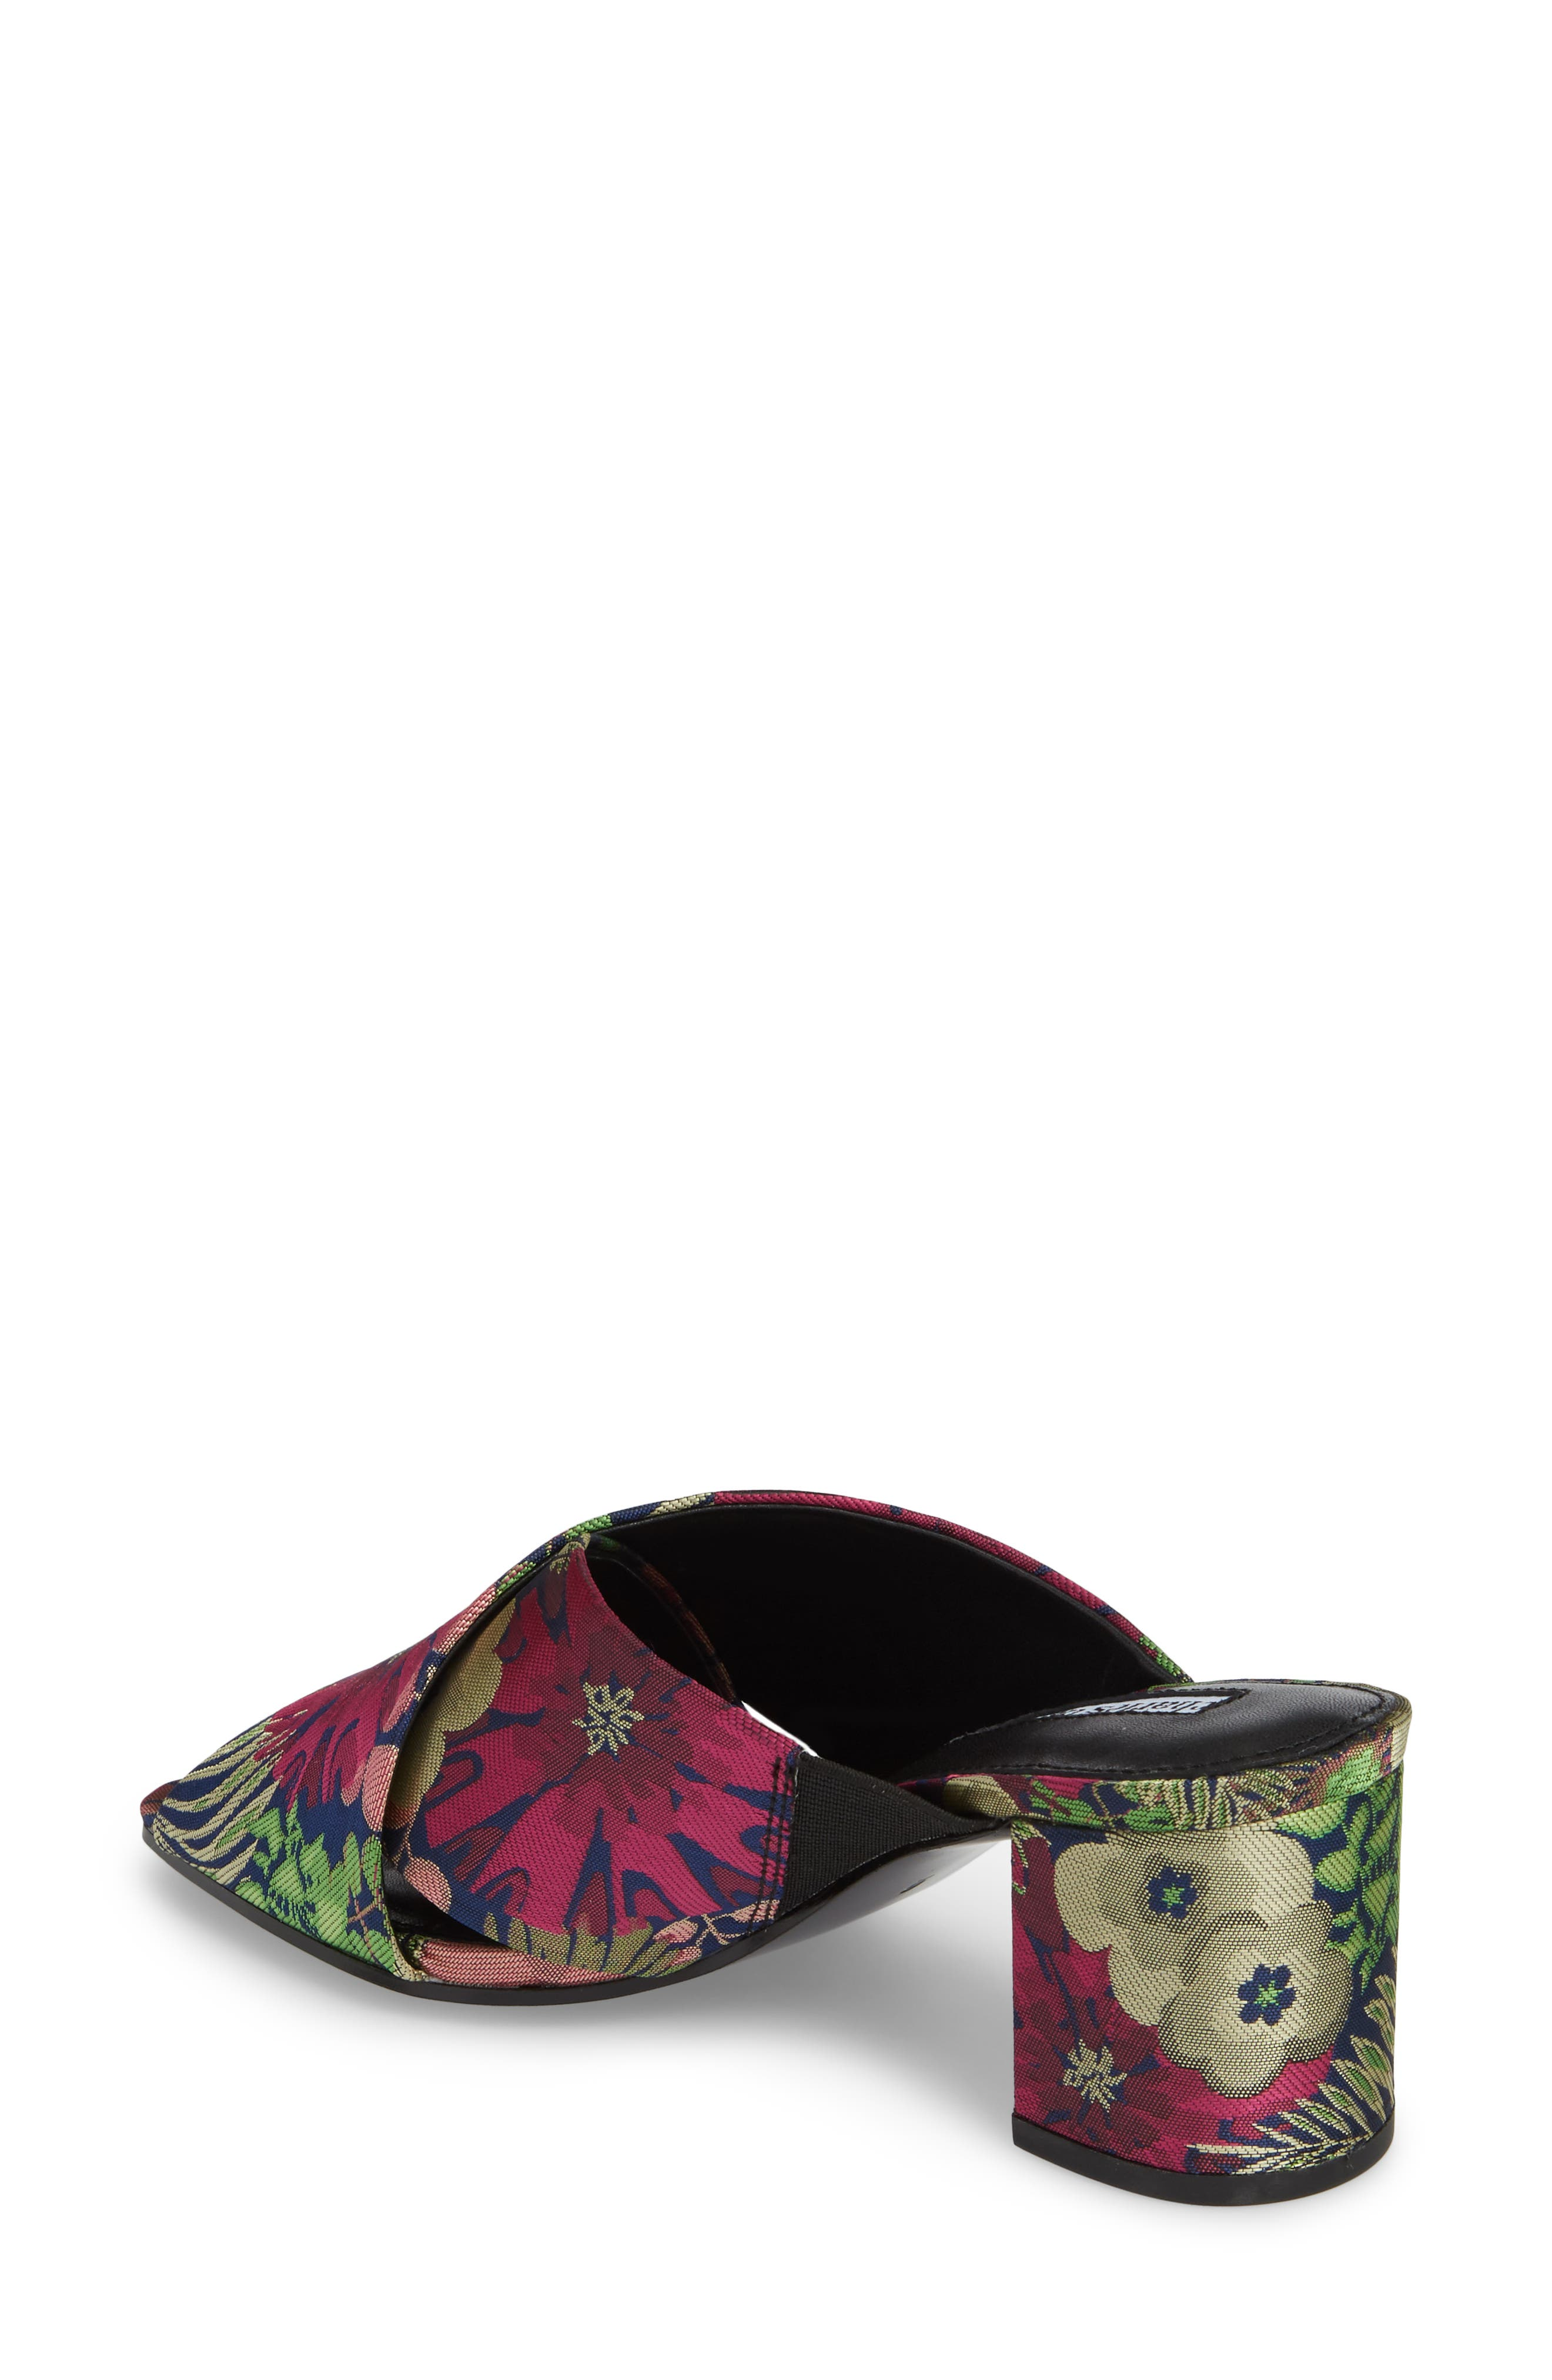 Crissaly Slide Sandal,                             Alternate thumbnail 2, color,                             Green Multi Floral Fabric